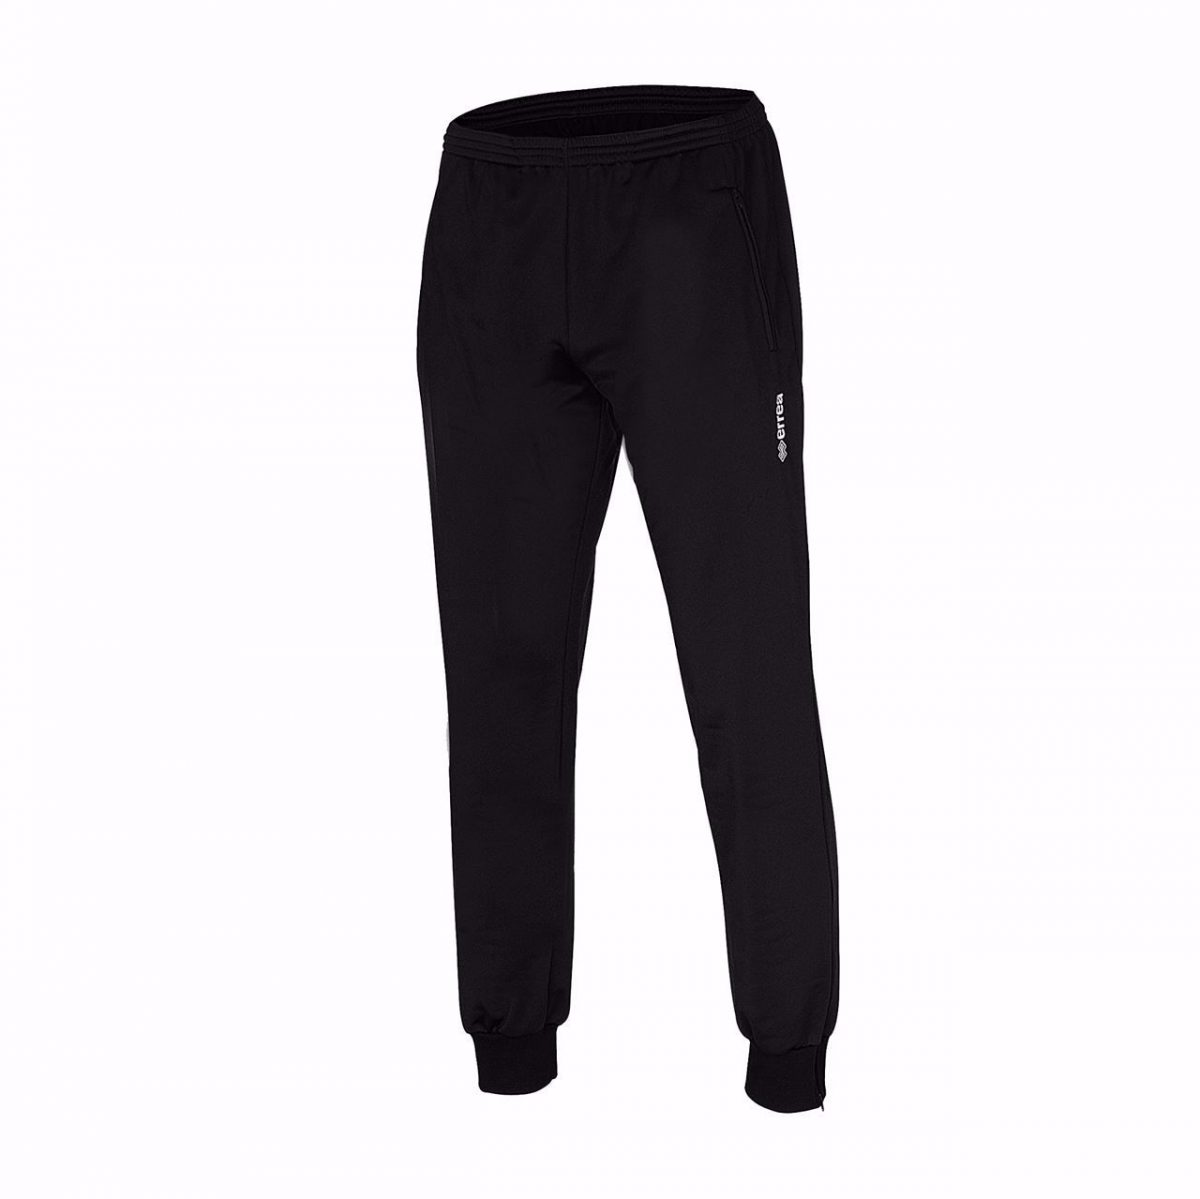 Errea SINTRA 3.0 Trackpant Trousers FP890Z